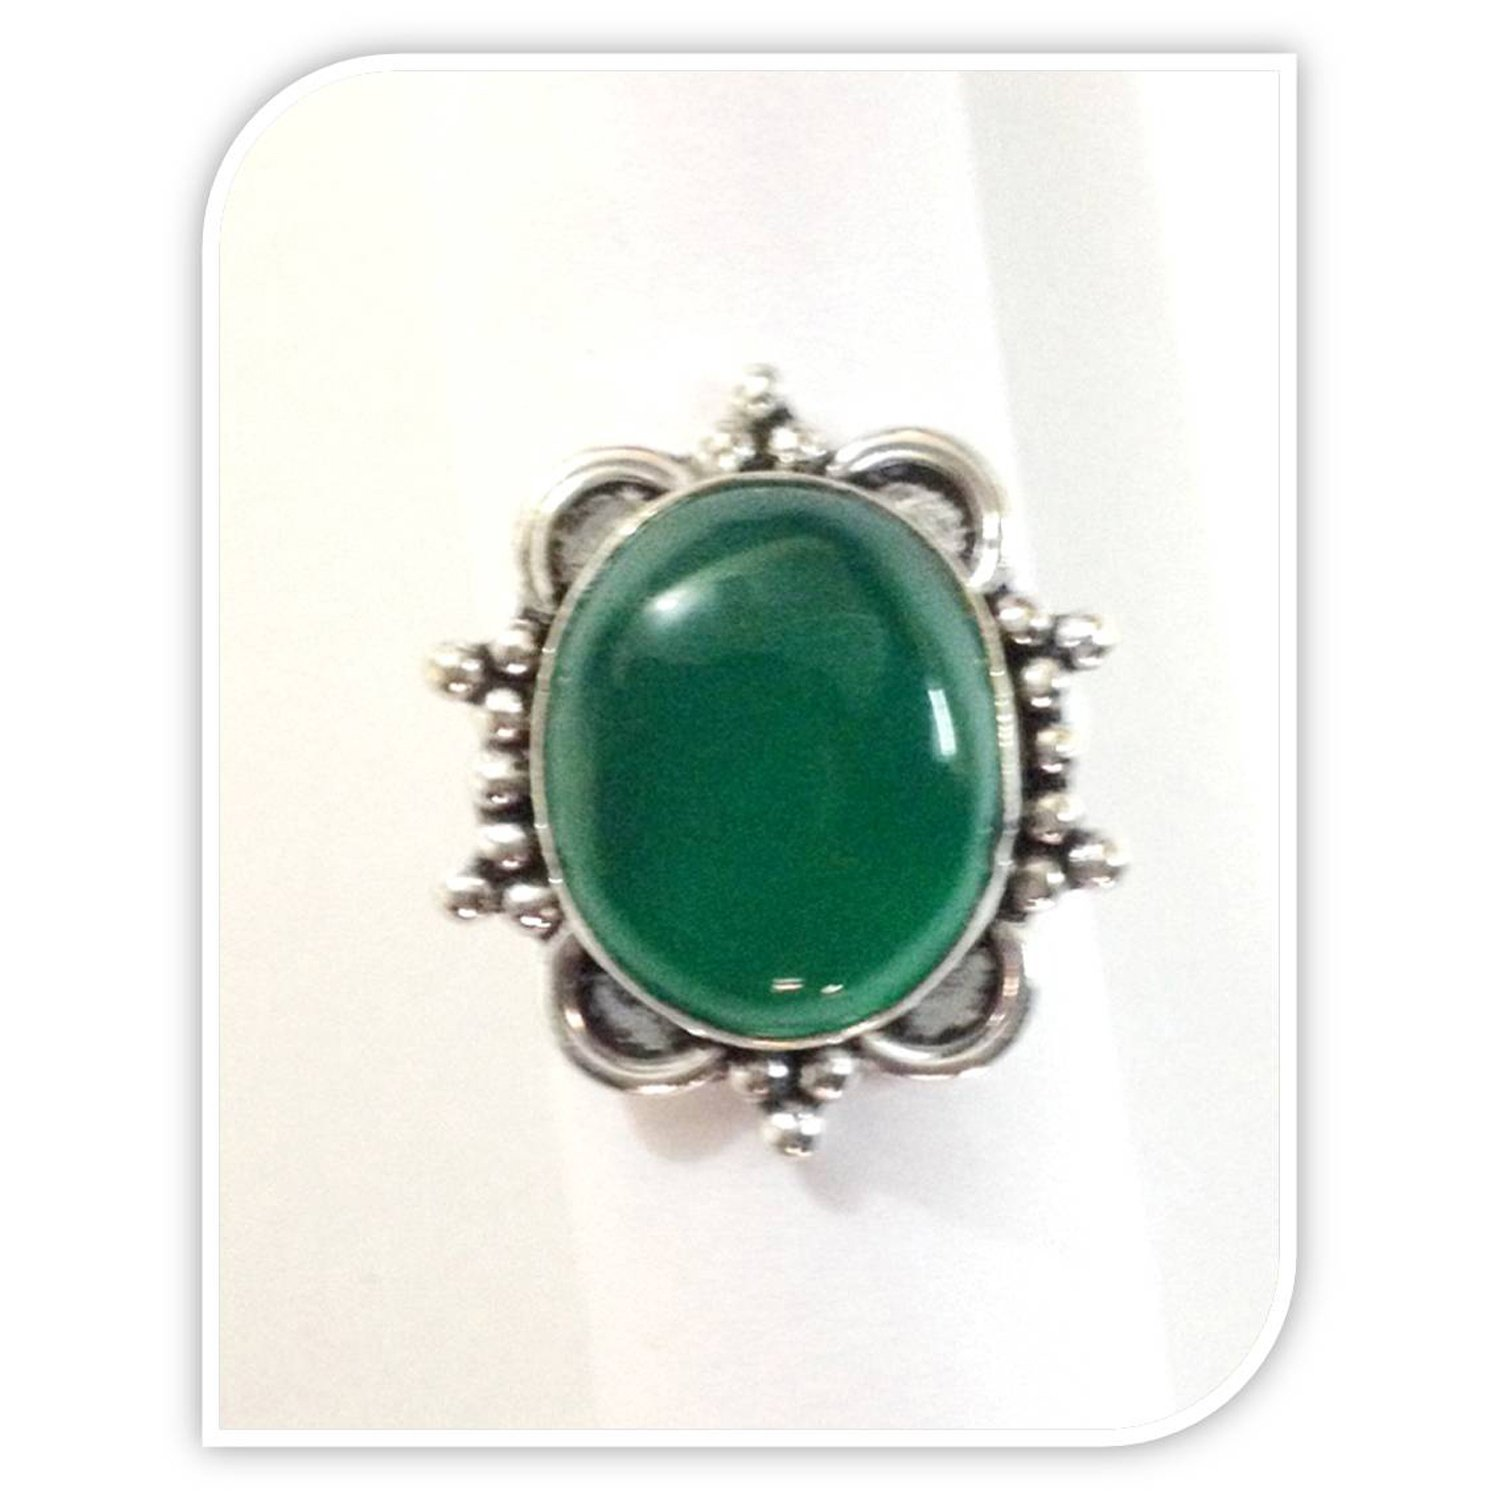 green engagement gemstone diamond fine rings product micheleco category mi ring lapeer jewelry